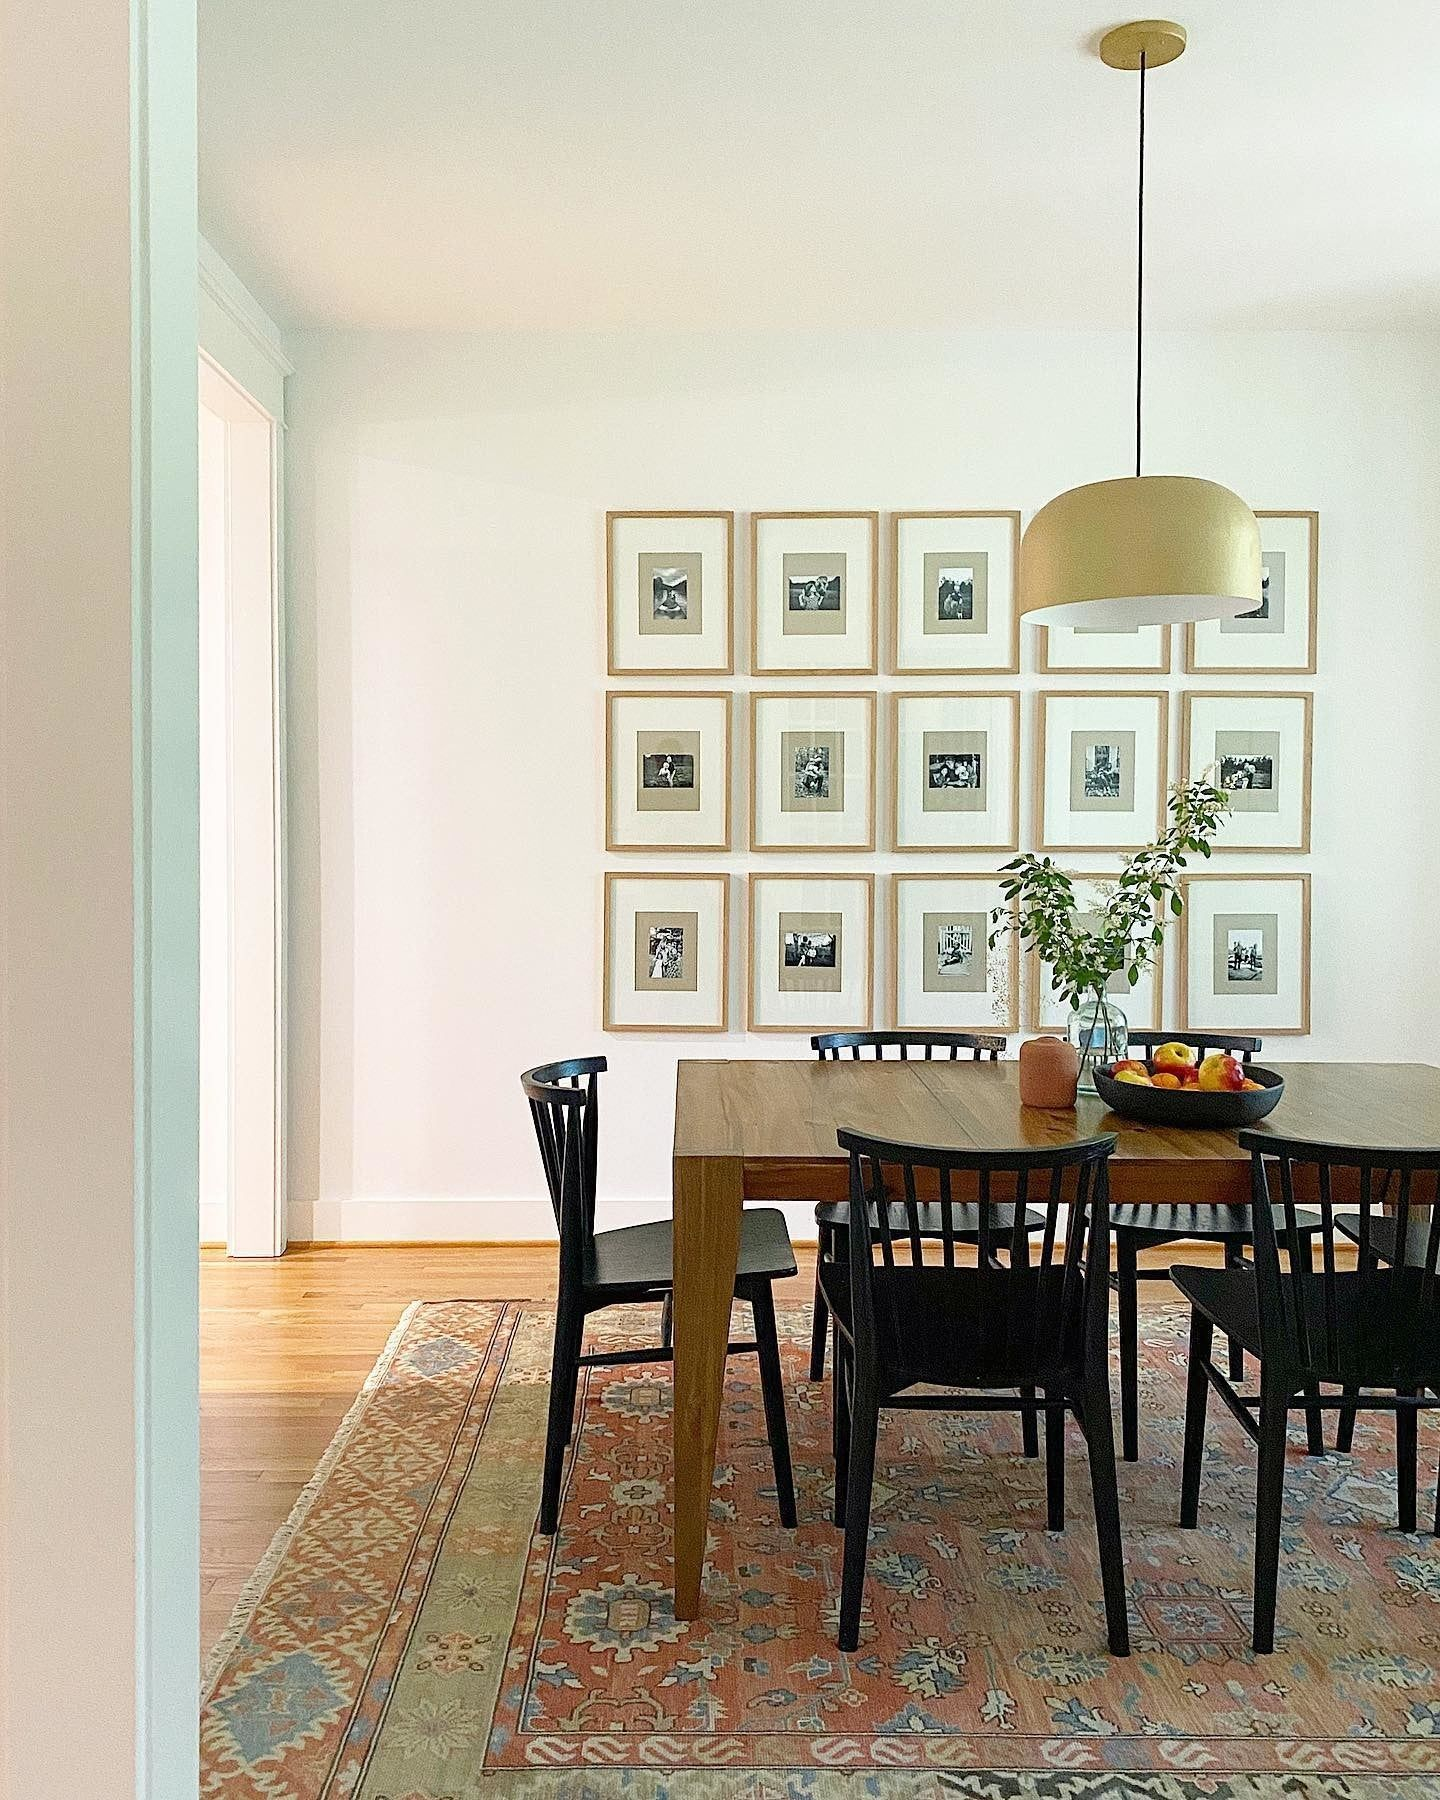 Dining Room Progress Our Gallery Wall Inspired By Housesevendesign Is Up And Filled Wit Dining Room Gallery Wall Spanish Dining Room Black Dining Chairs Dining room progress inspiration